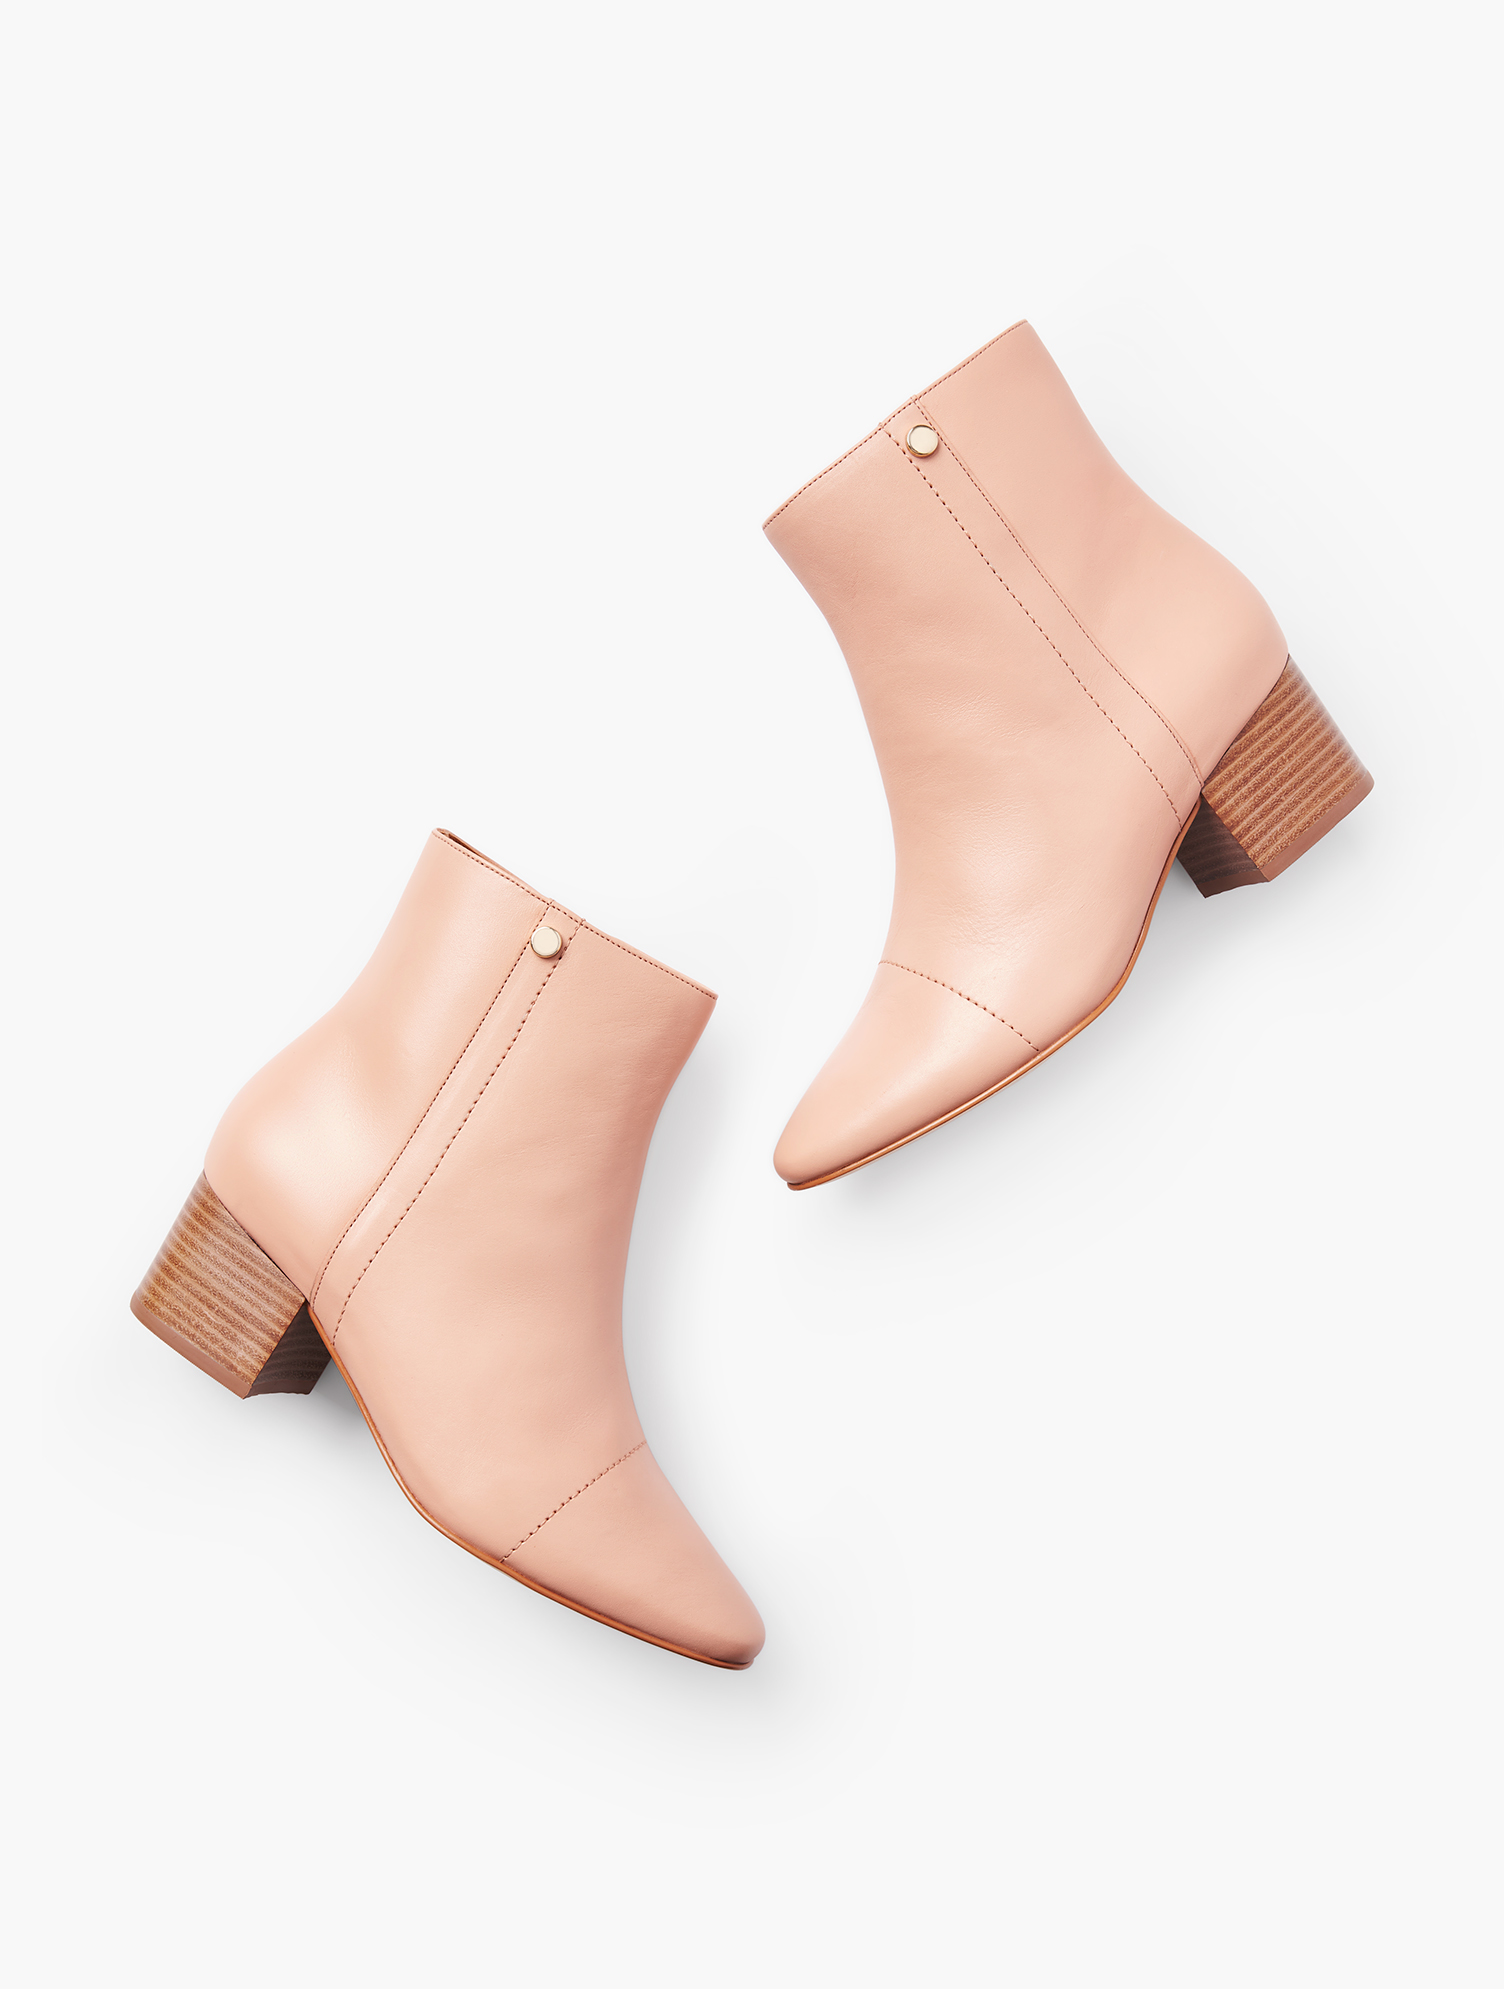 Soft nappa leather in powdery beige. This block-heel bootie is a staple in every wardrobe. Features 2 inches Heel Memory Foam Footbed Breathable Lining Imported Material: 100% Leather Harlow Booties - Powder Beige - 11M Talbots